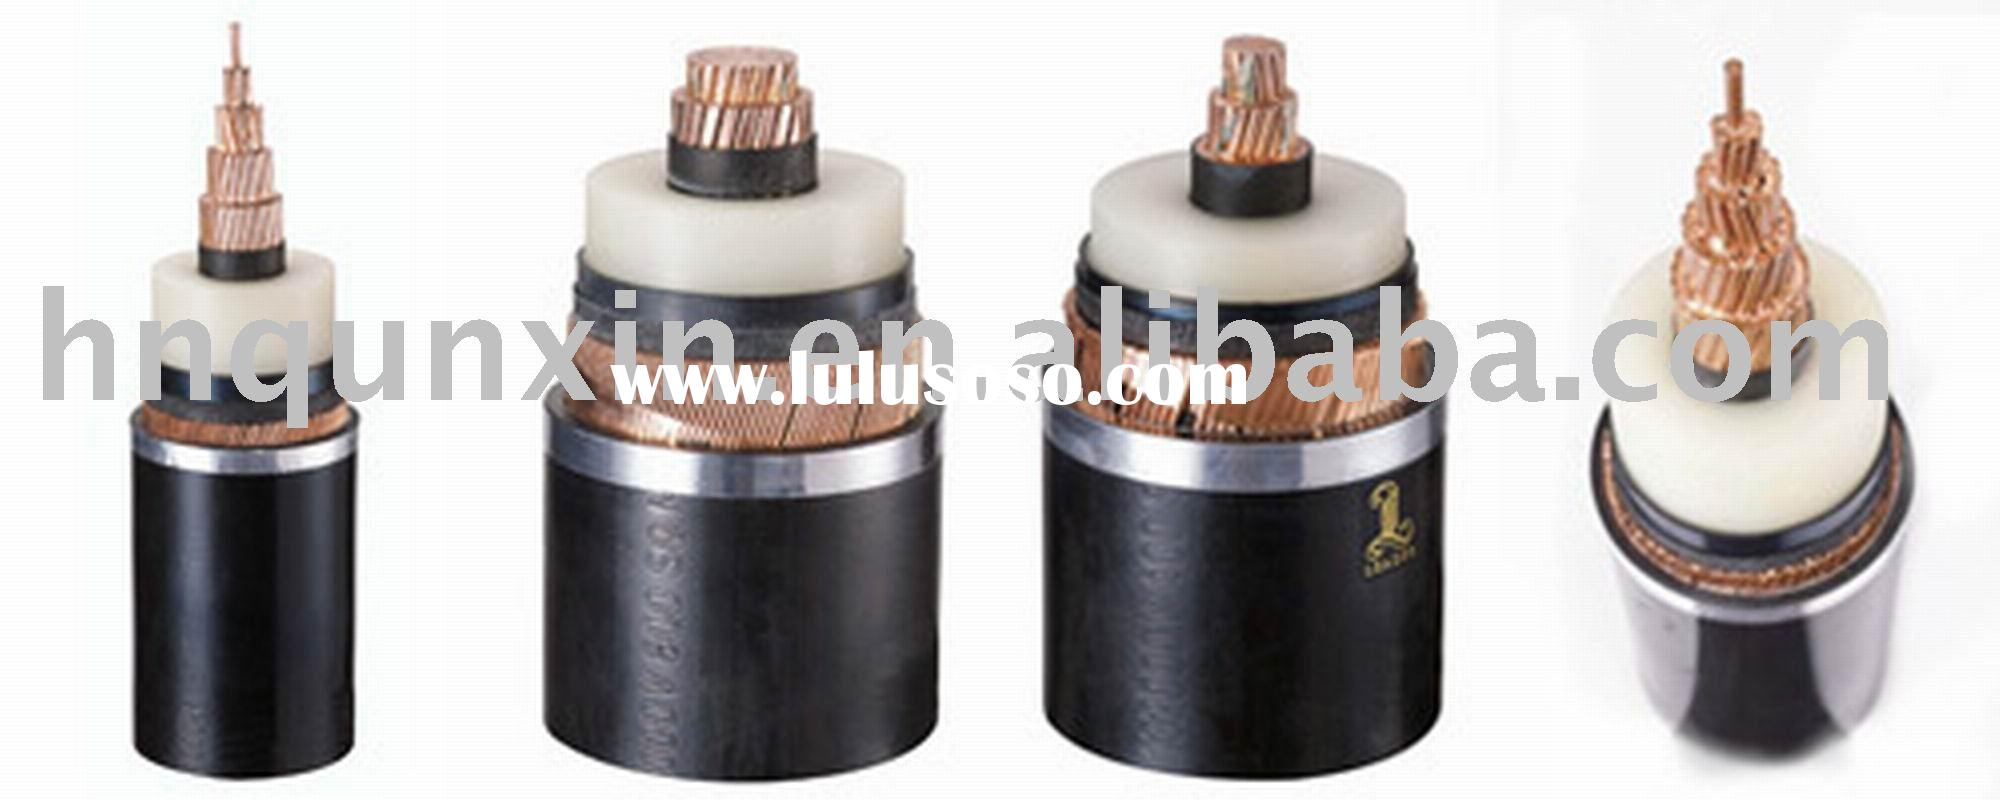 66kv Xlpe Cable Specification China 127 220kv Xlpe Ultra